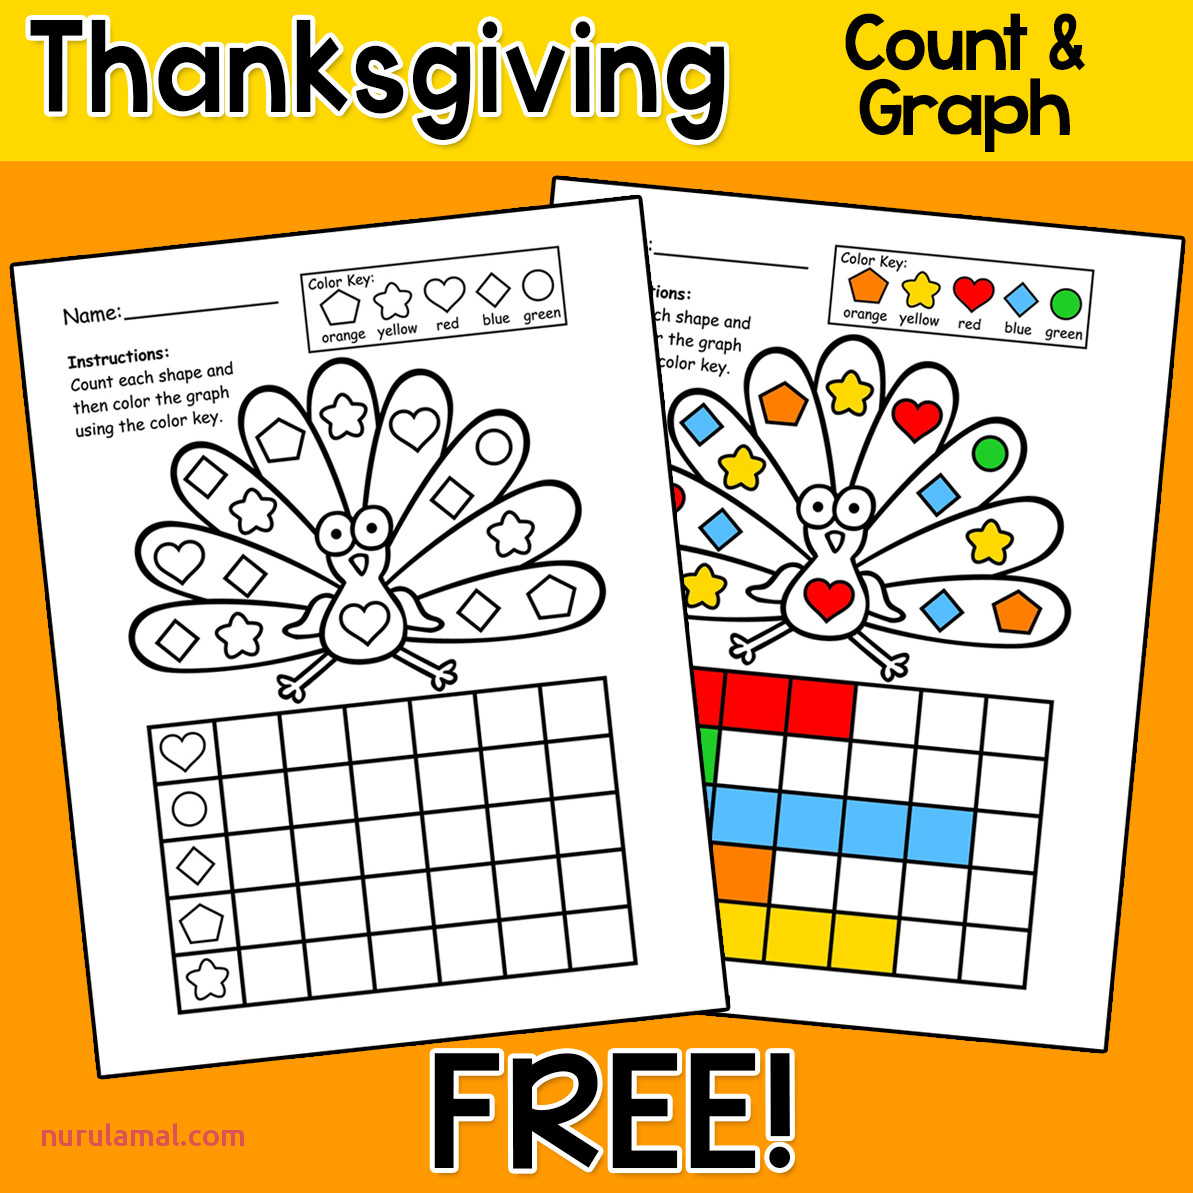 Thanksgiving Counting Worksheet Printable